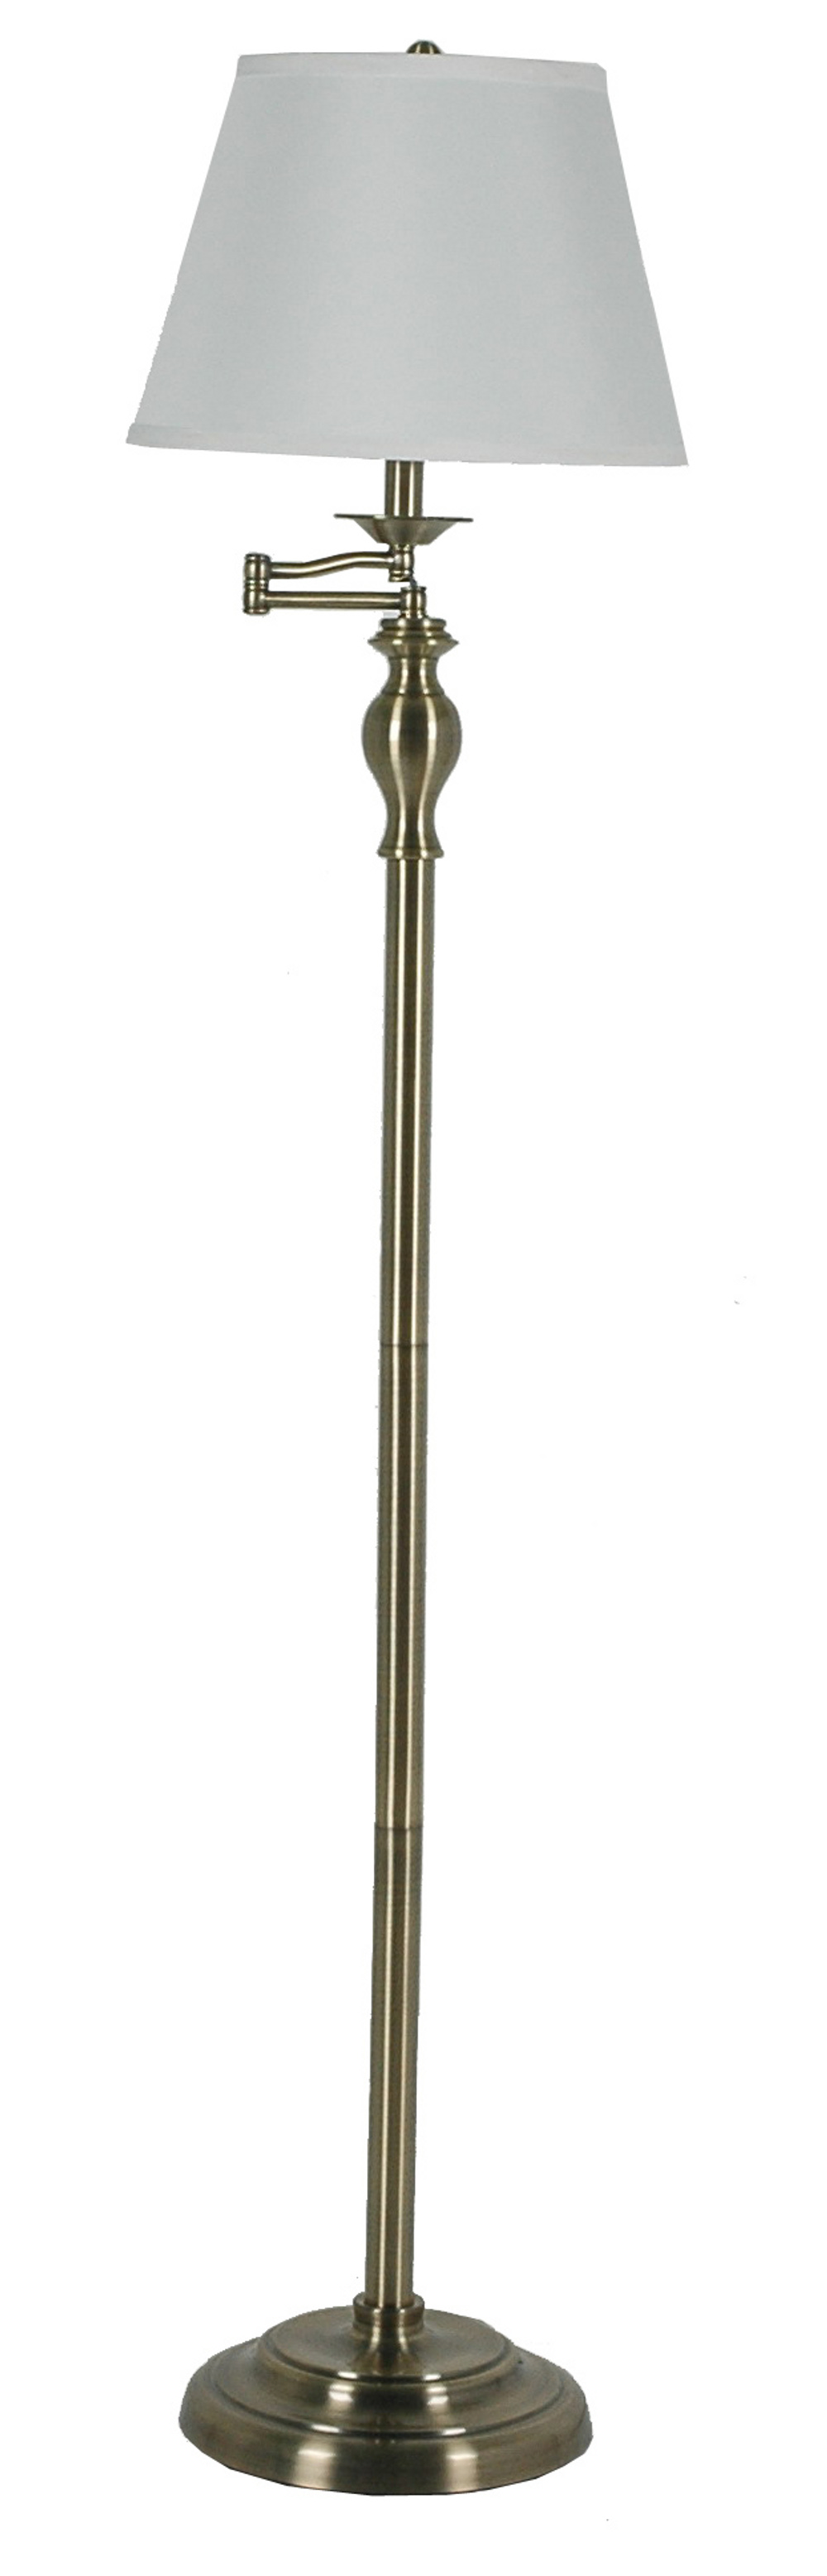 (1258) Metal Antique Brass Swing Arm Floor Lamp